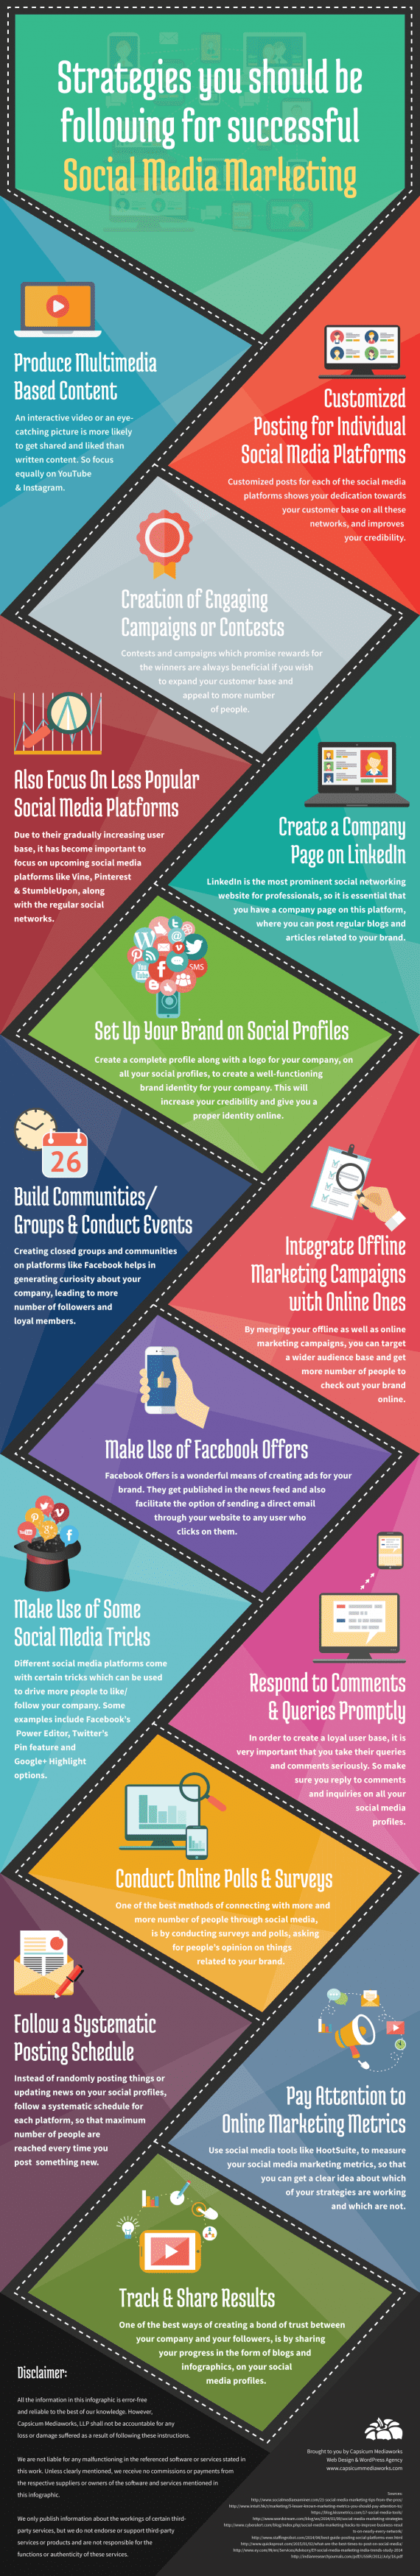 The-Ultimate-Guide-Social-Media-Marketing